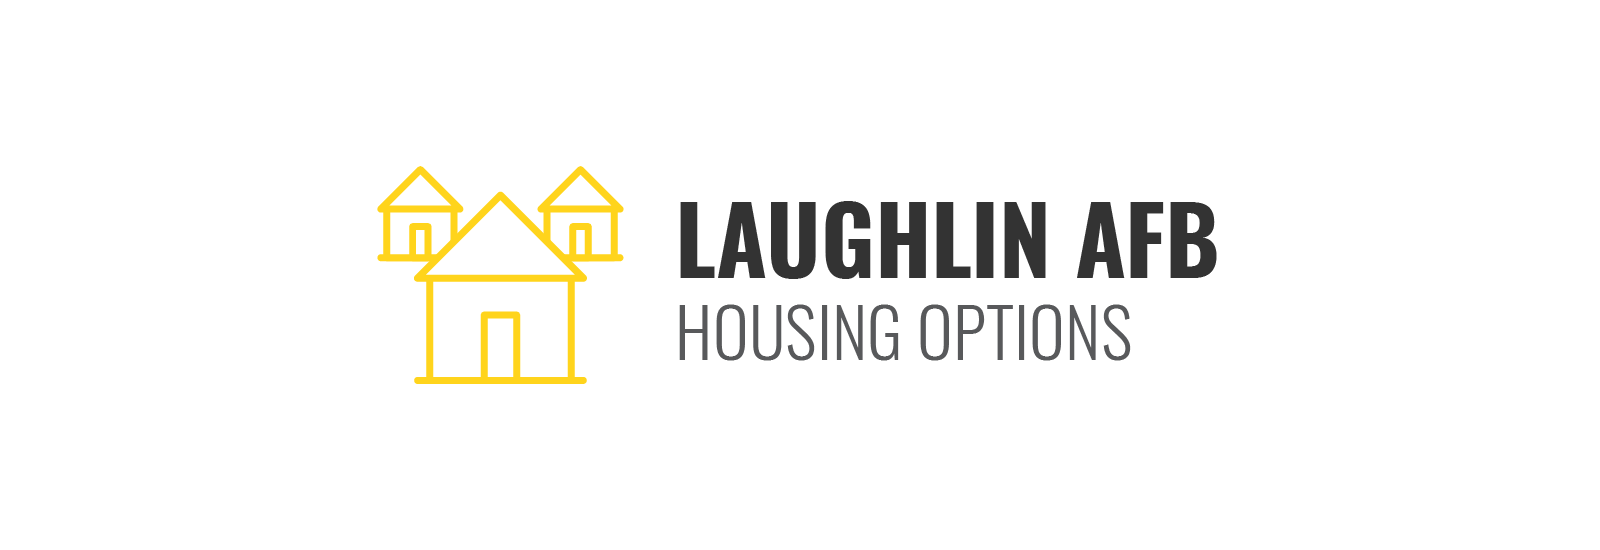 Laughlin AFB Housing Options